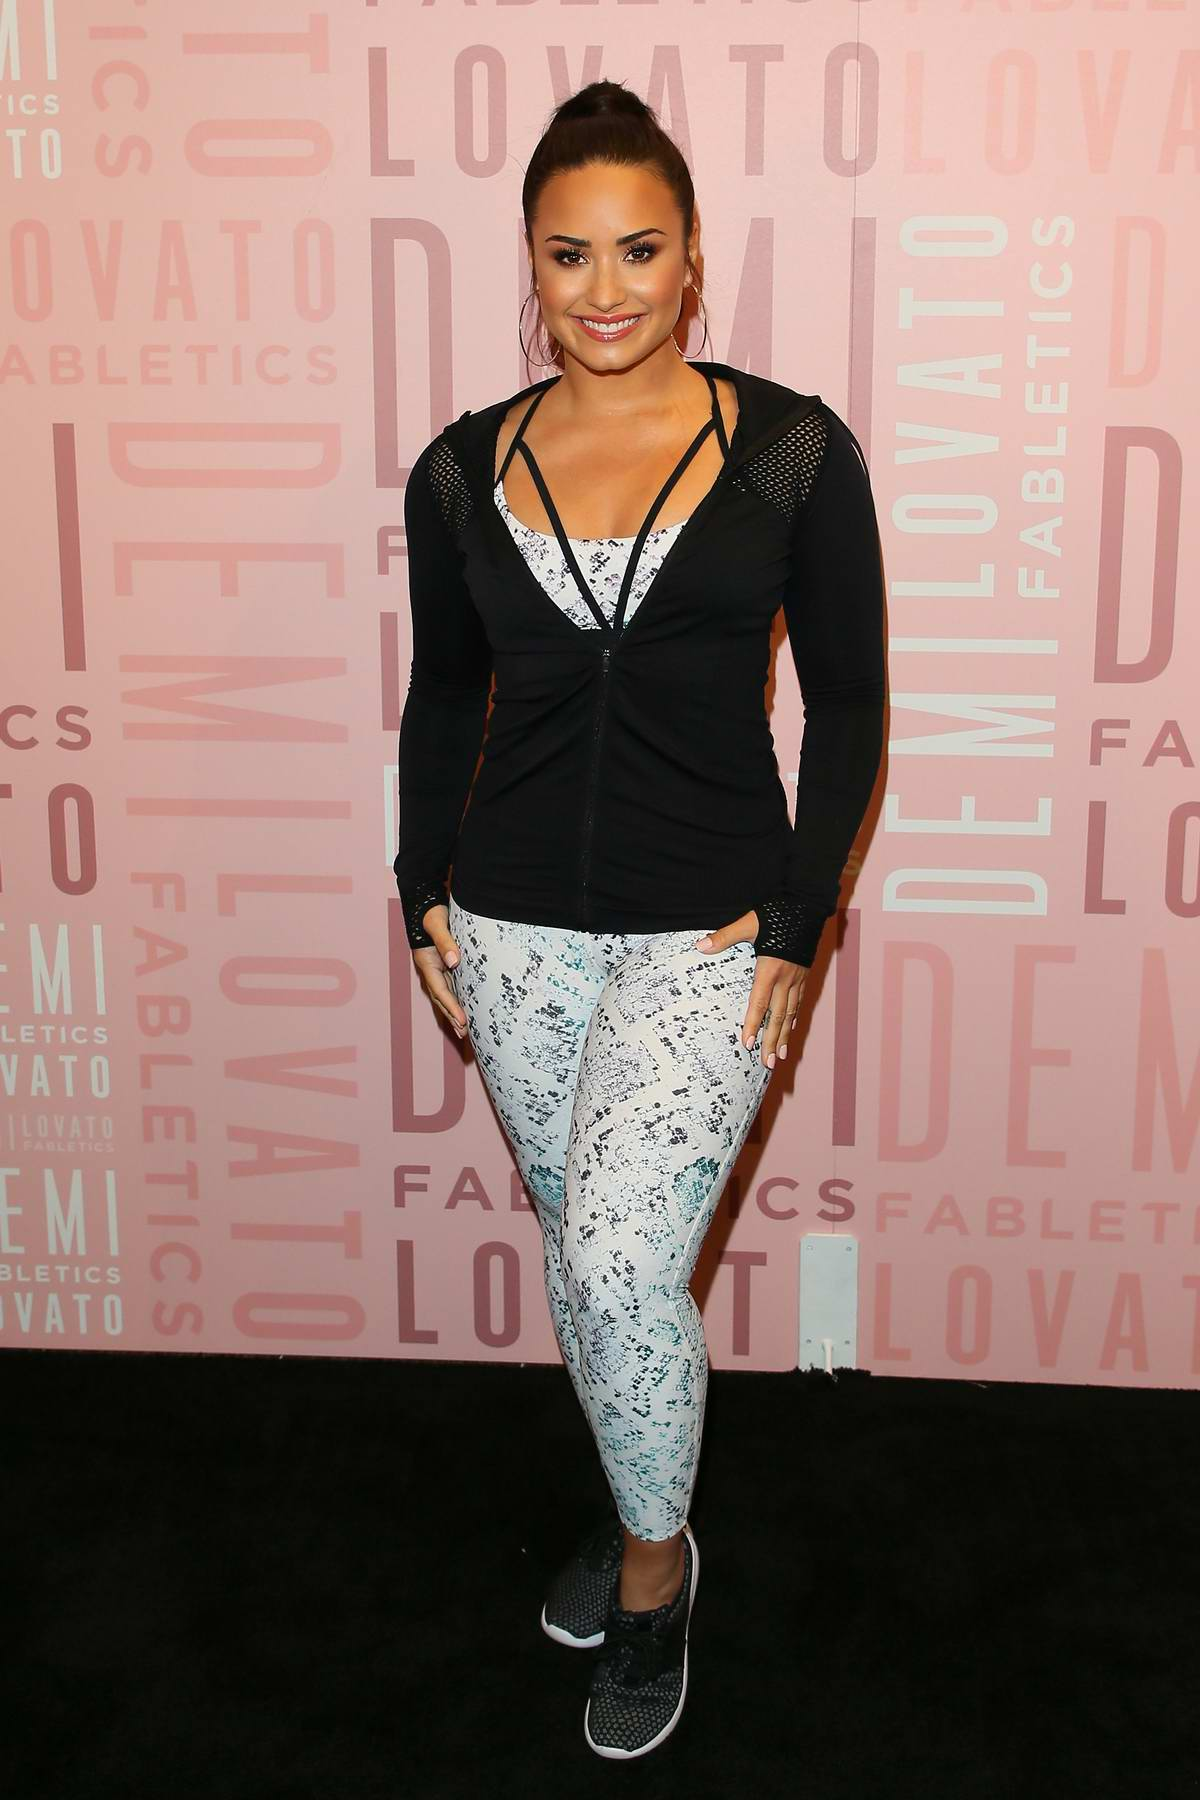 Demi Lovato visits Fabletics at Del Amo Fashion Center in Torrance, California